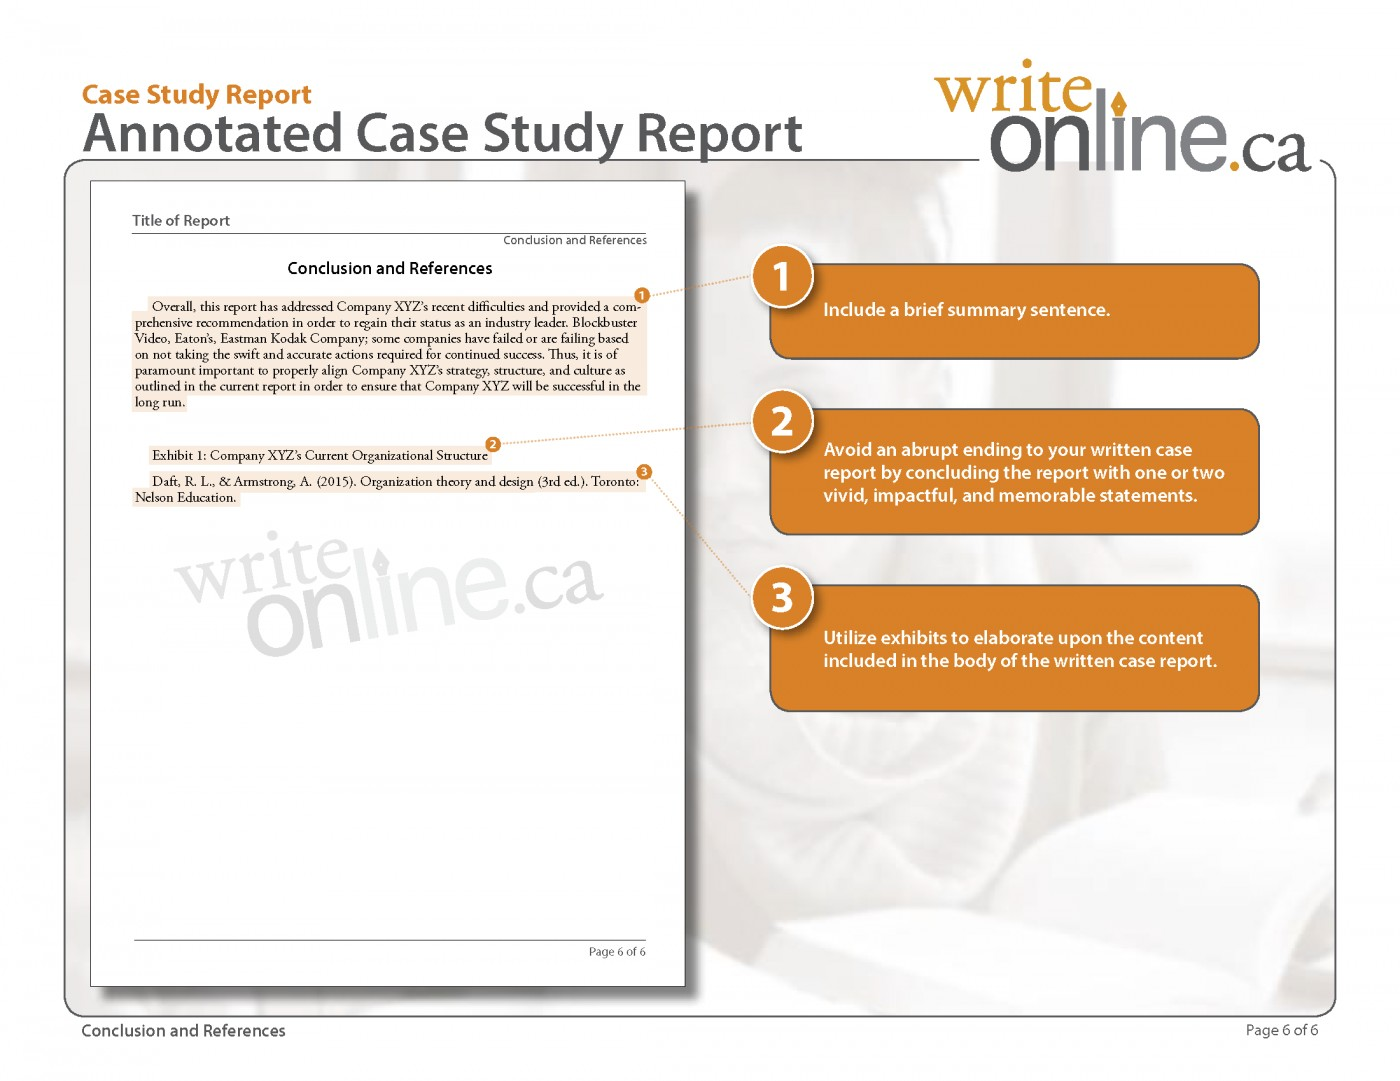 010 Parts Of Research Paper And Its Definition Pdf Casestudy Annotatedfull Page 6 Staggering A 1400